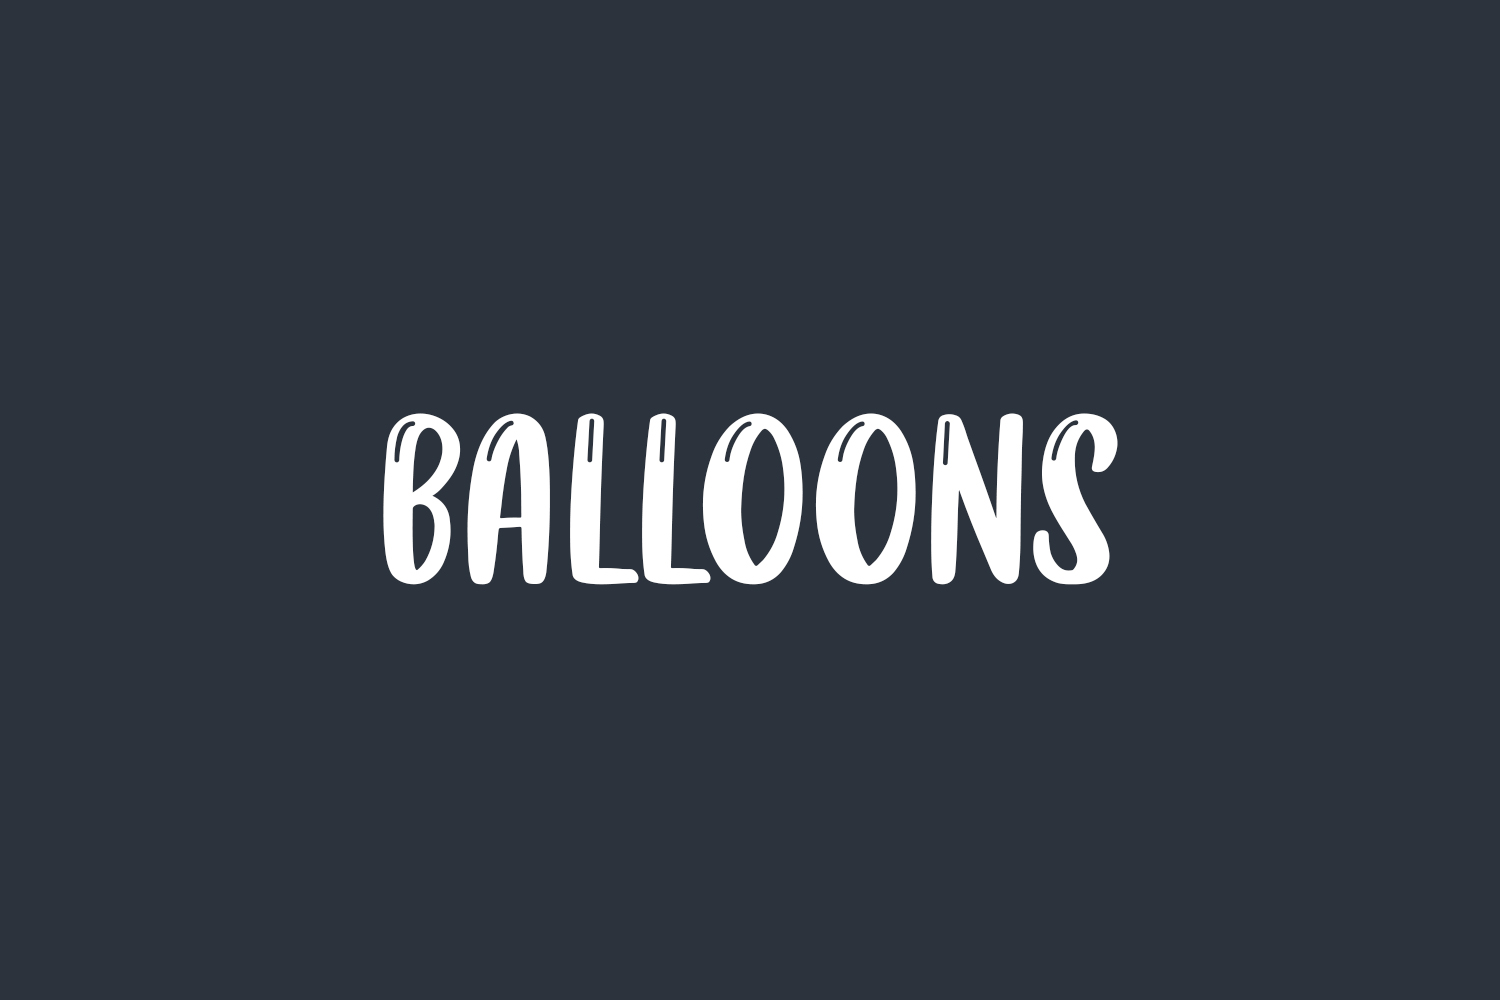 Balloons Free Font